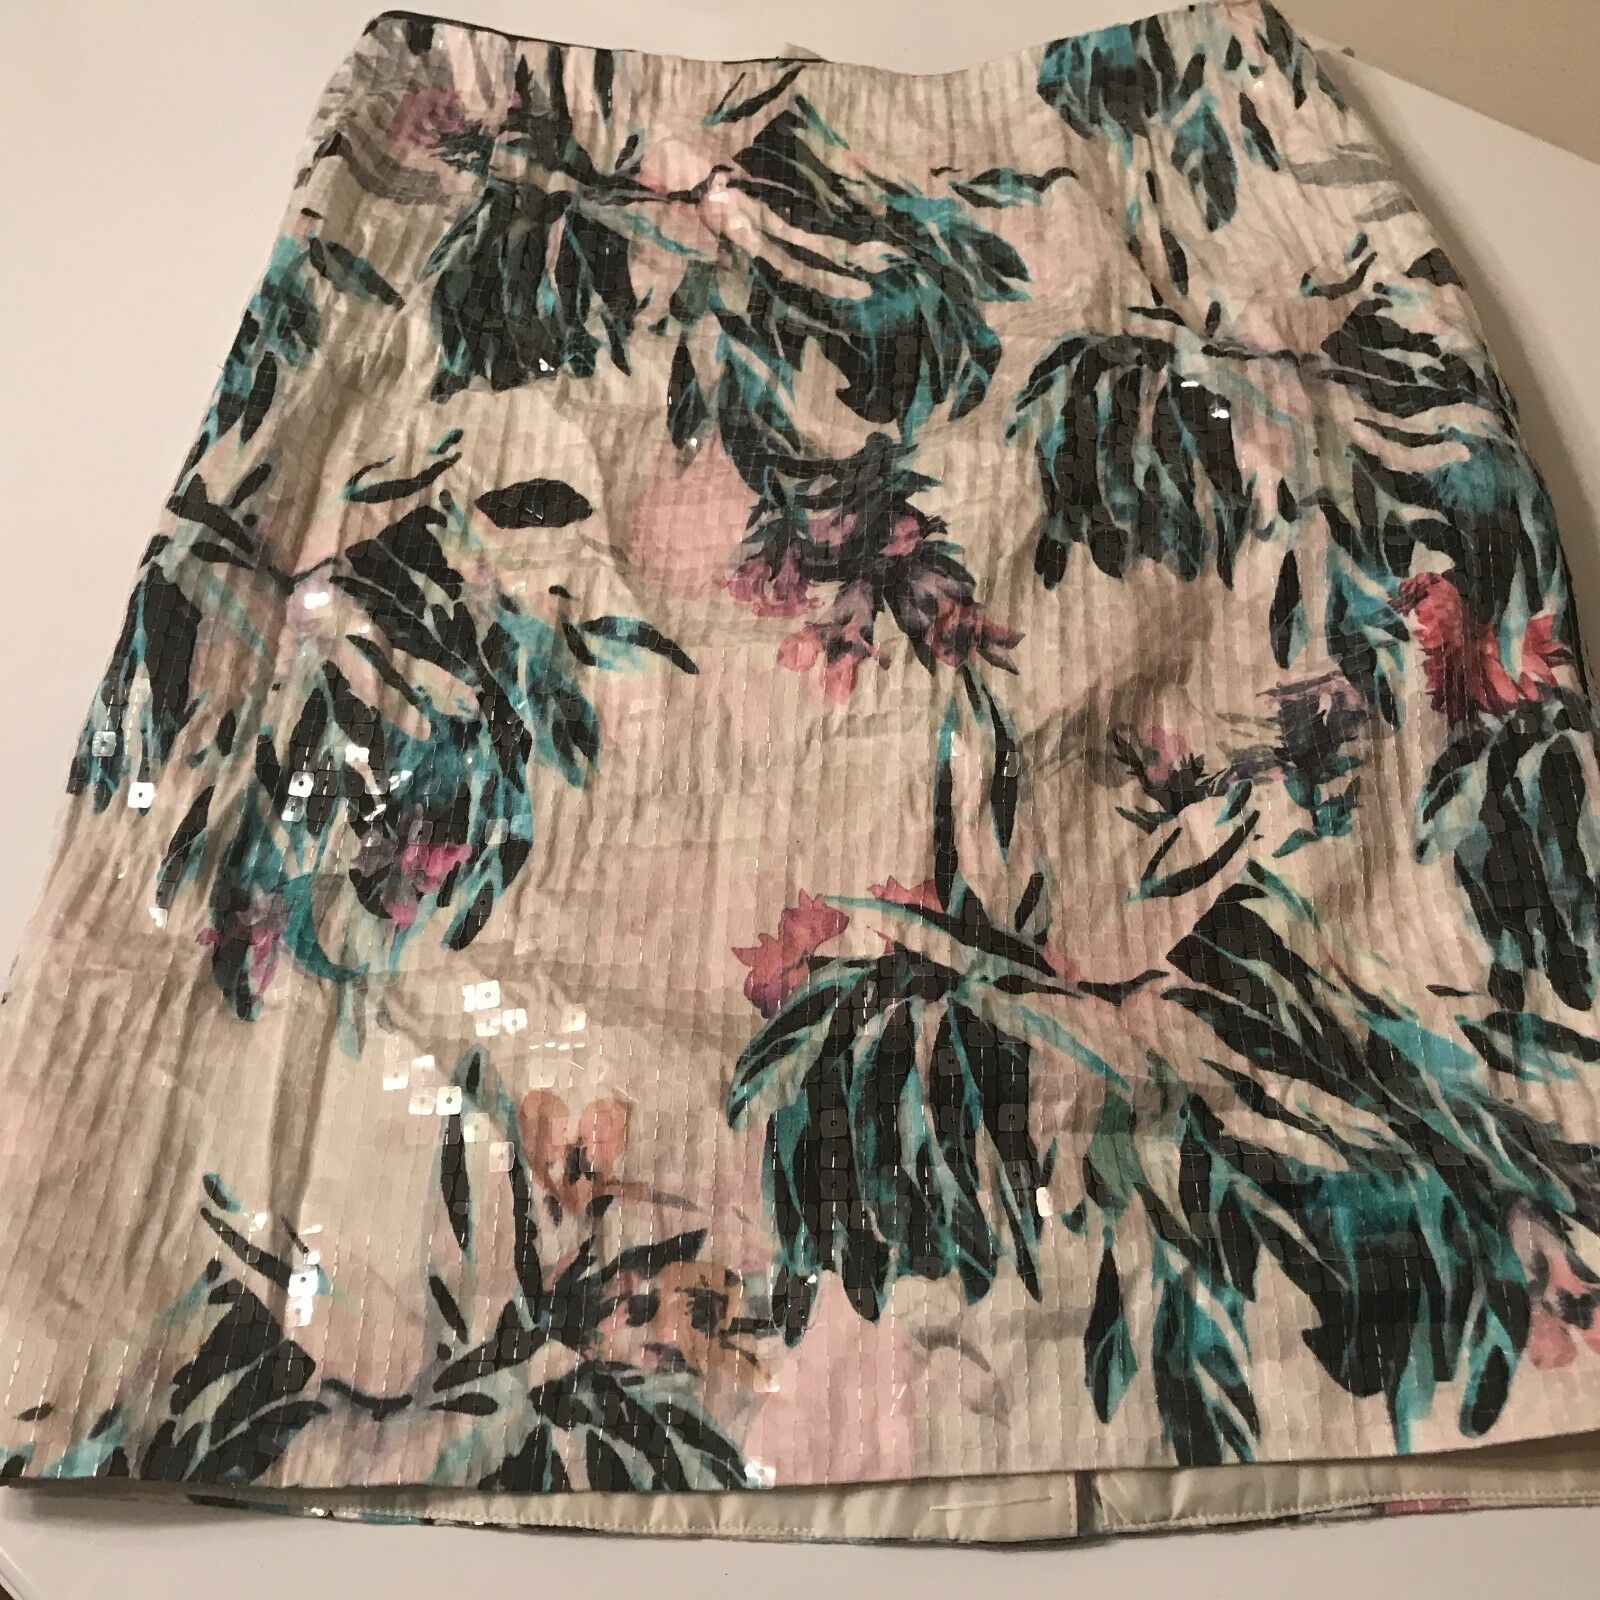 H&M SEQUIN FLORAL FLOWERS PENCIL SKIRT US6 EU36  NWT CONSCIOUS TREND DIVIDED